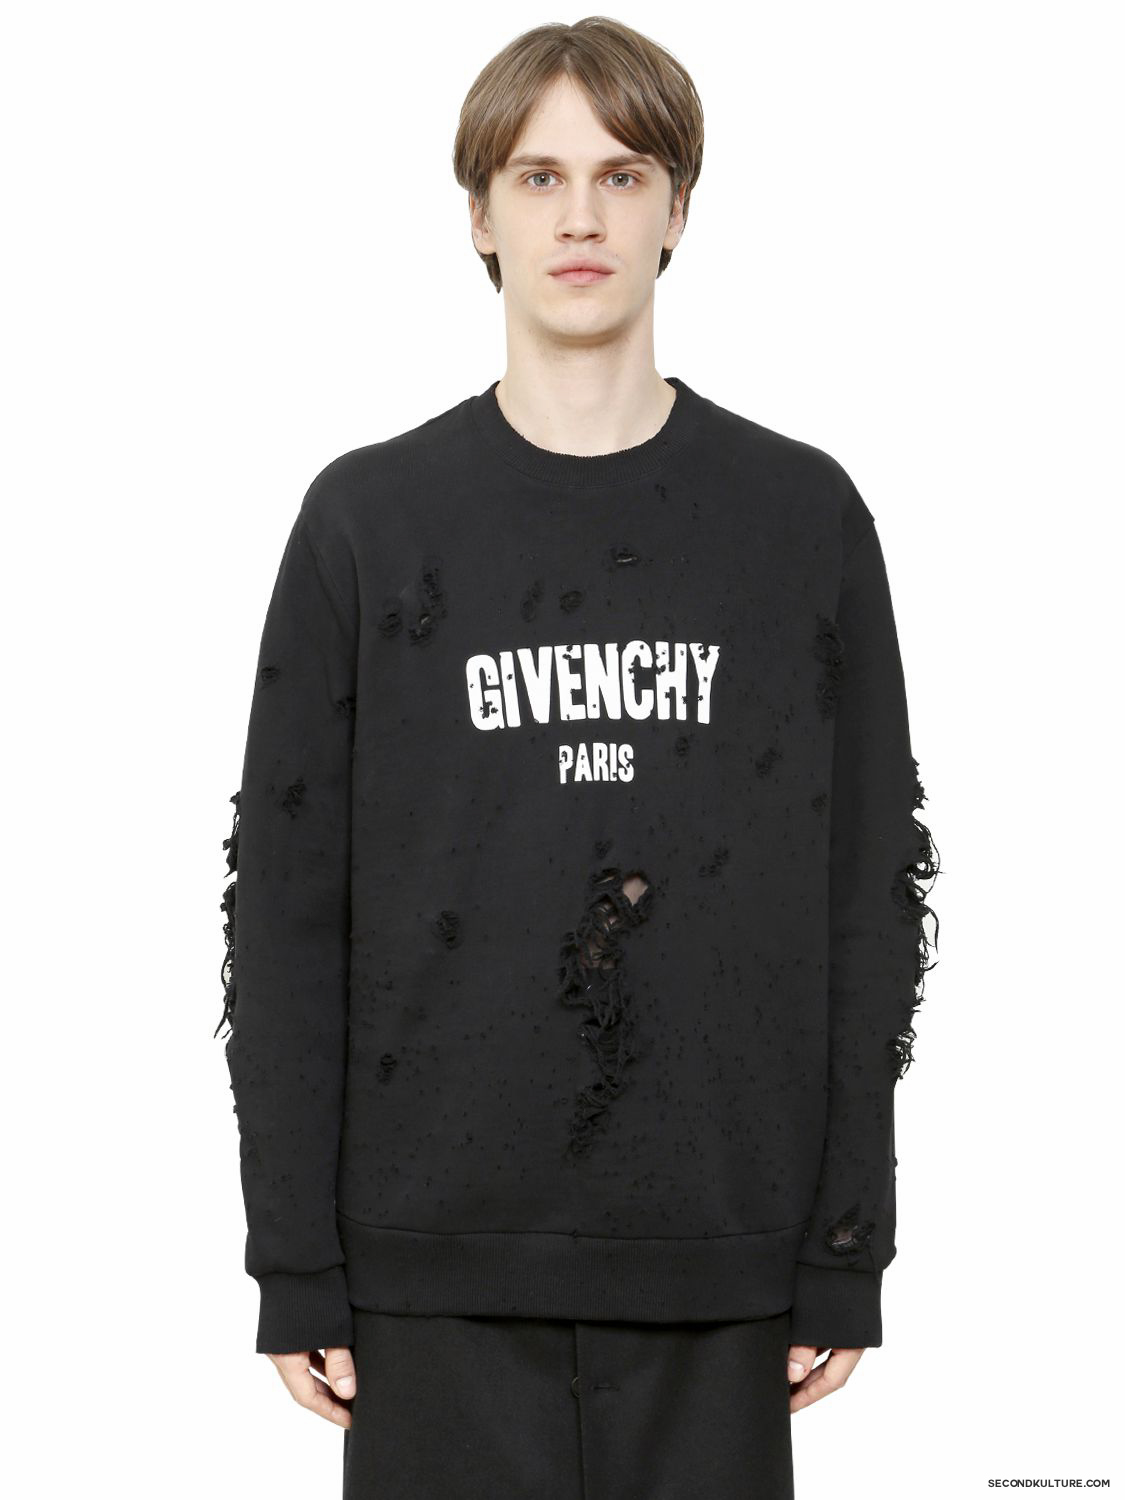 Givenchy-Logo-Print-Destroyed-Columbian-Fit-Sweatshirt-Fall-Winter-2015-1